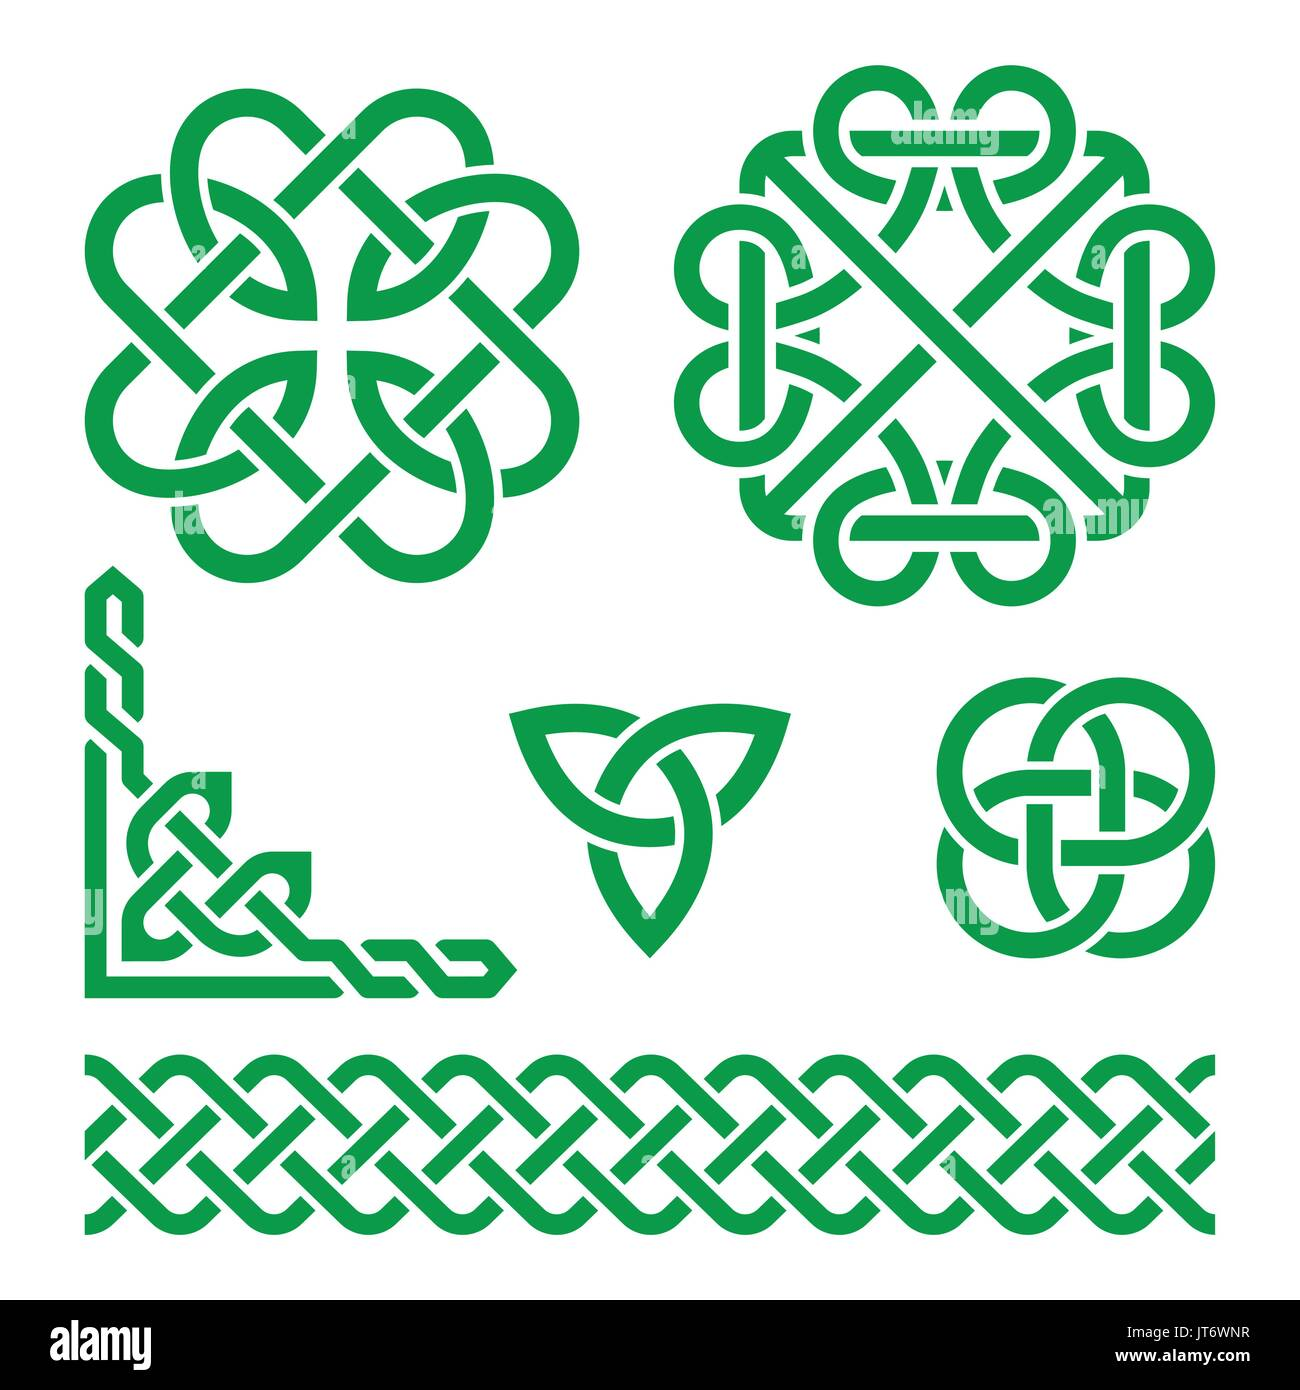 Celtic Irish Symbol Spiral Artwork Stock Photos & Celtic Irish ...